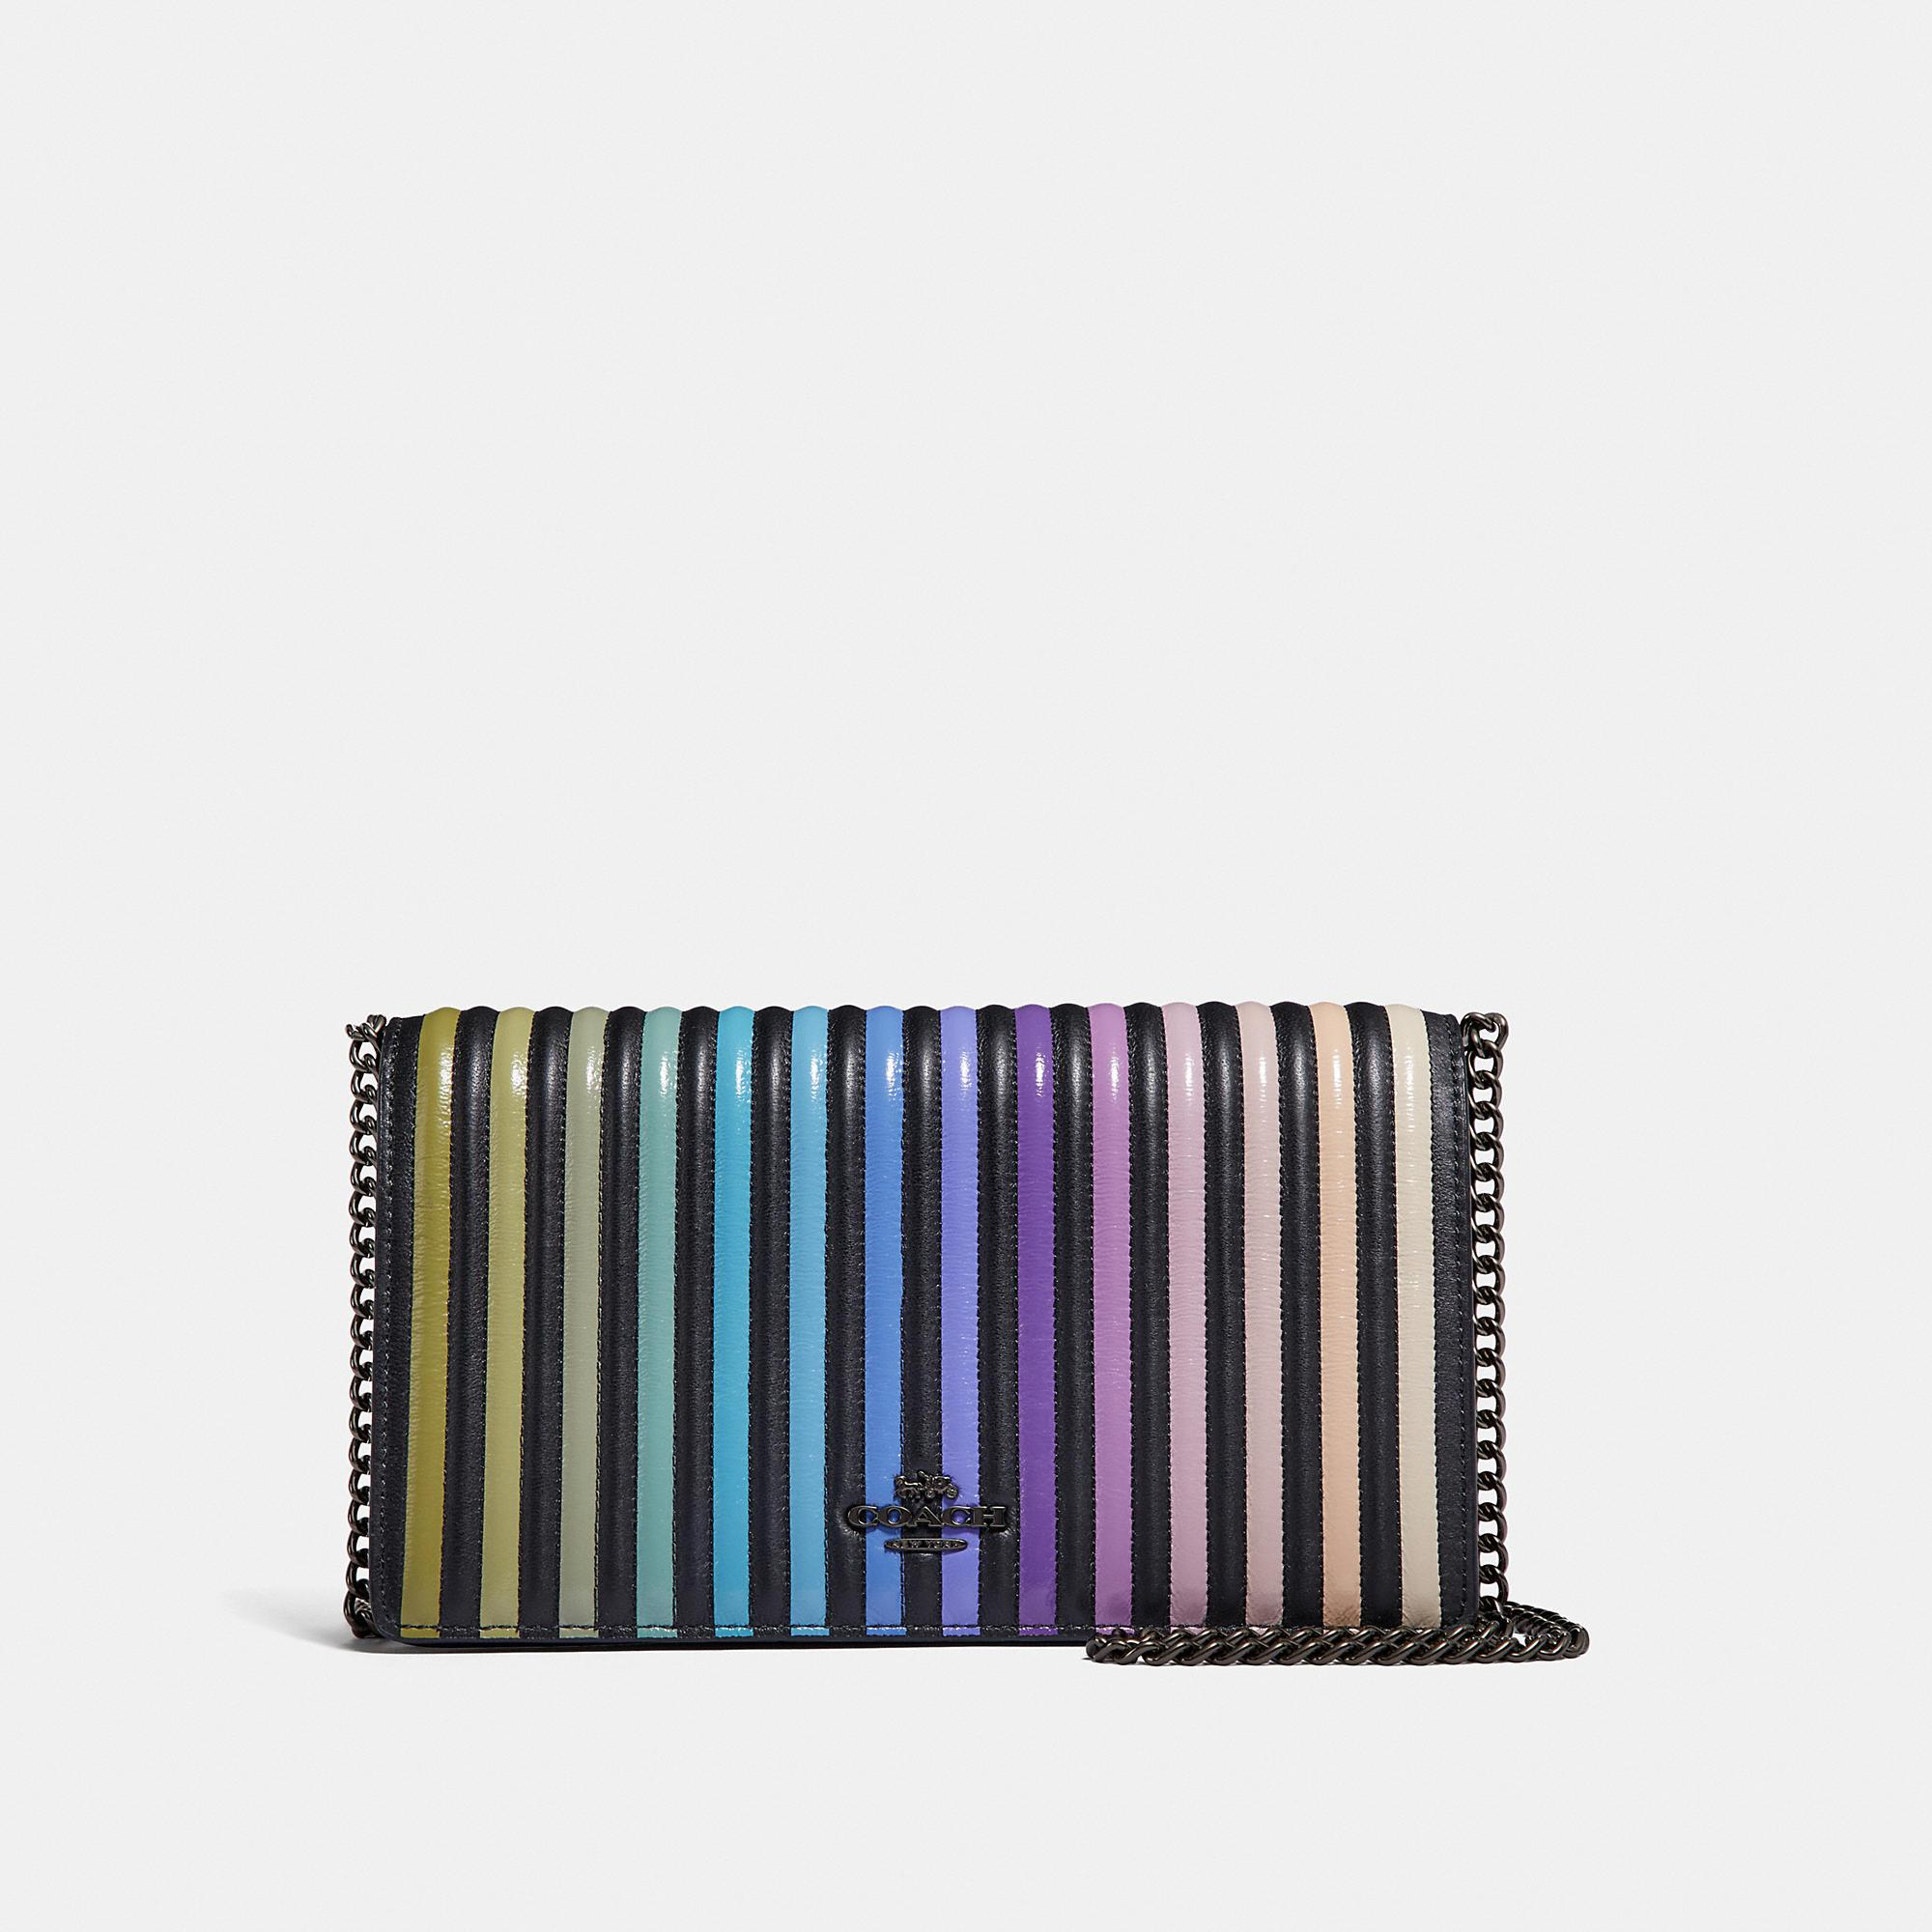 Lyst - Coach Callie Foldover Chain Clutch With Colorblock